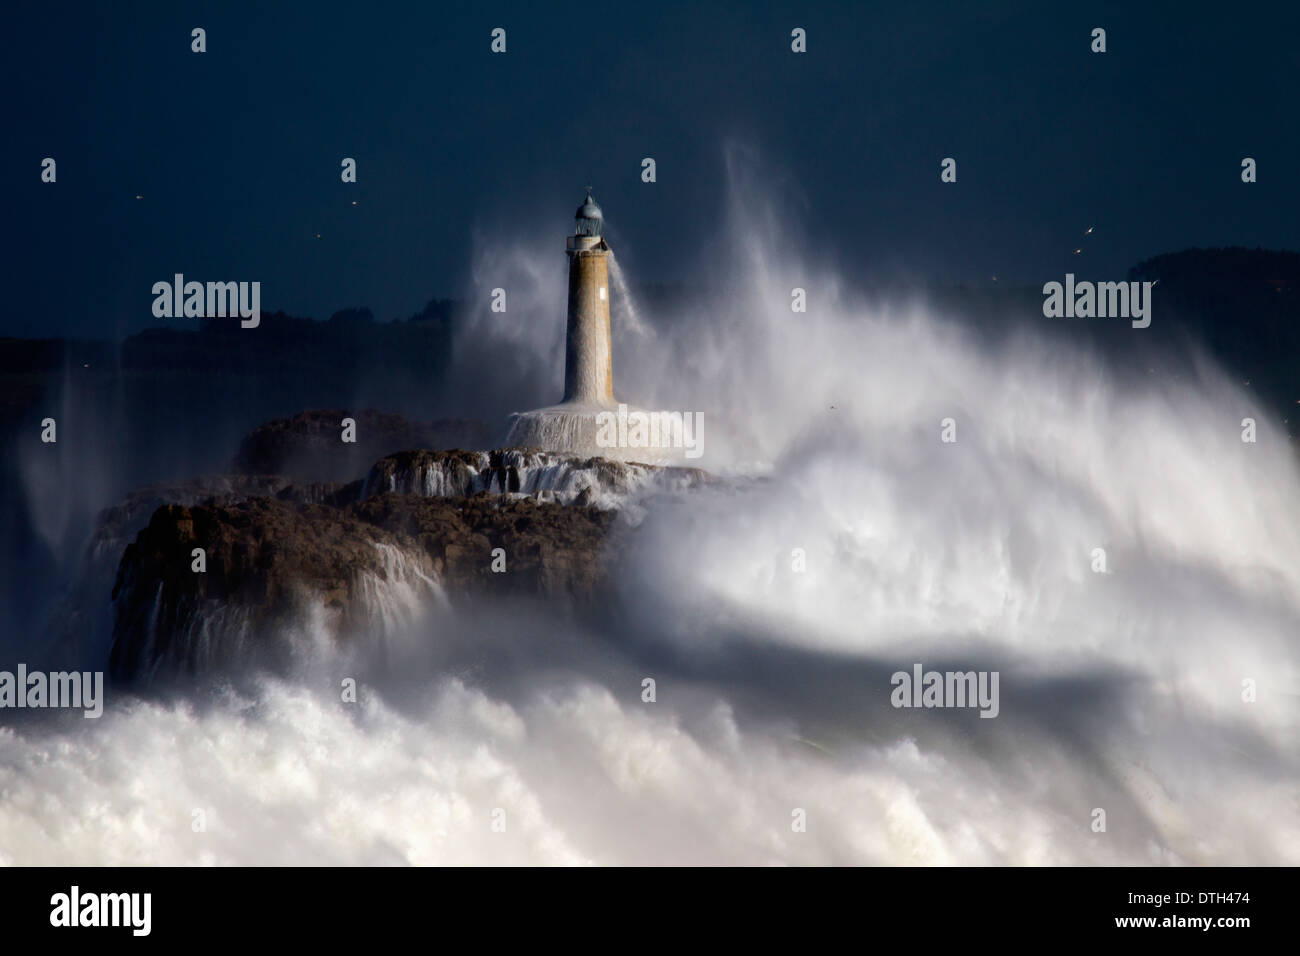 The Mouro island lighthouse in the big storm. - Stock Image